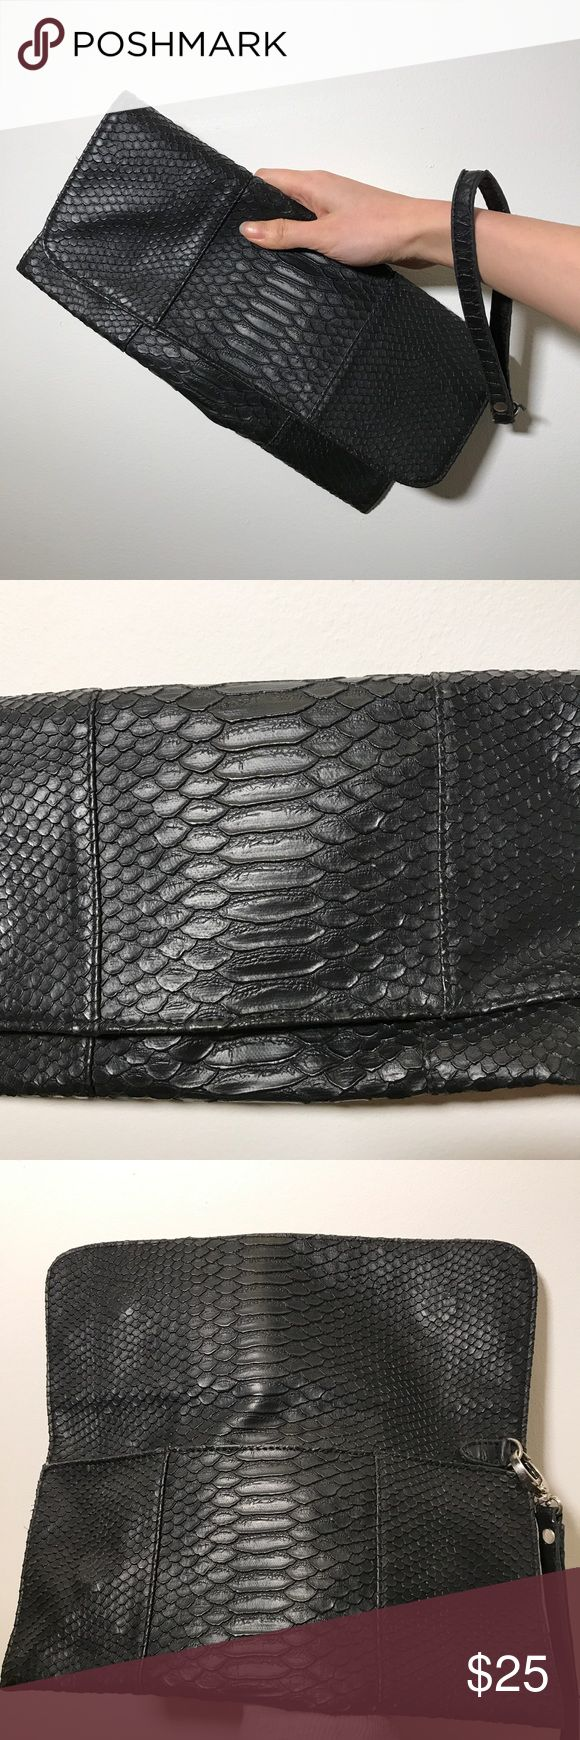 🔻Price🔻DEENA & OZZY Black Wristlet Clutch This stylish all-year-round clutch bag has snake skin embossed faux leather. Interior has one zip pocket and two open pockets, very useful! With magmatic enclosure. CONDITION: Good. No obvious sign of wear.   🙏Reasonable Offers Accepted🙏 Deena & Ozzy Bags Clutches & Wristlets